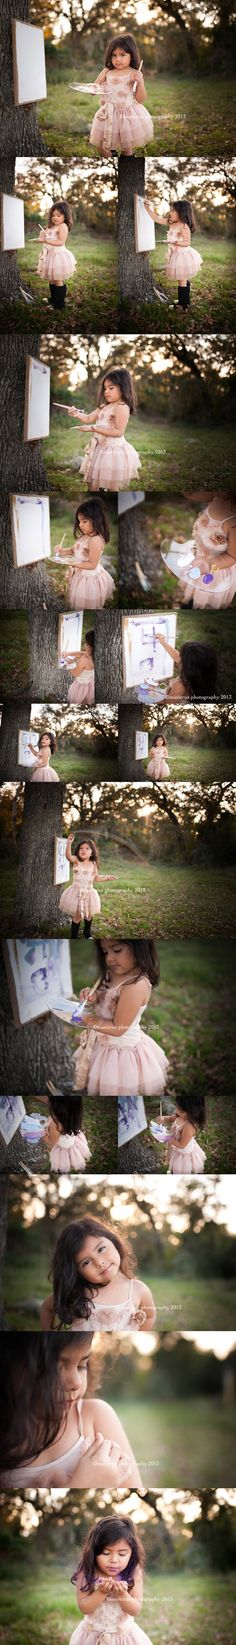 in pictures four | Houston TX Child Photographer